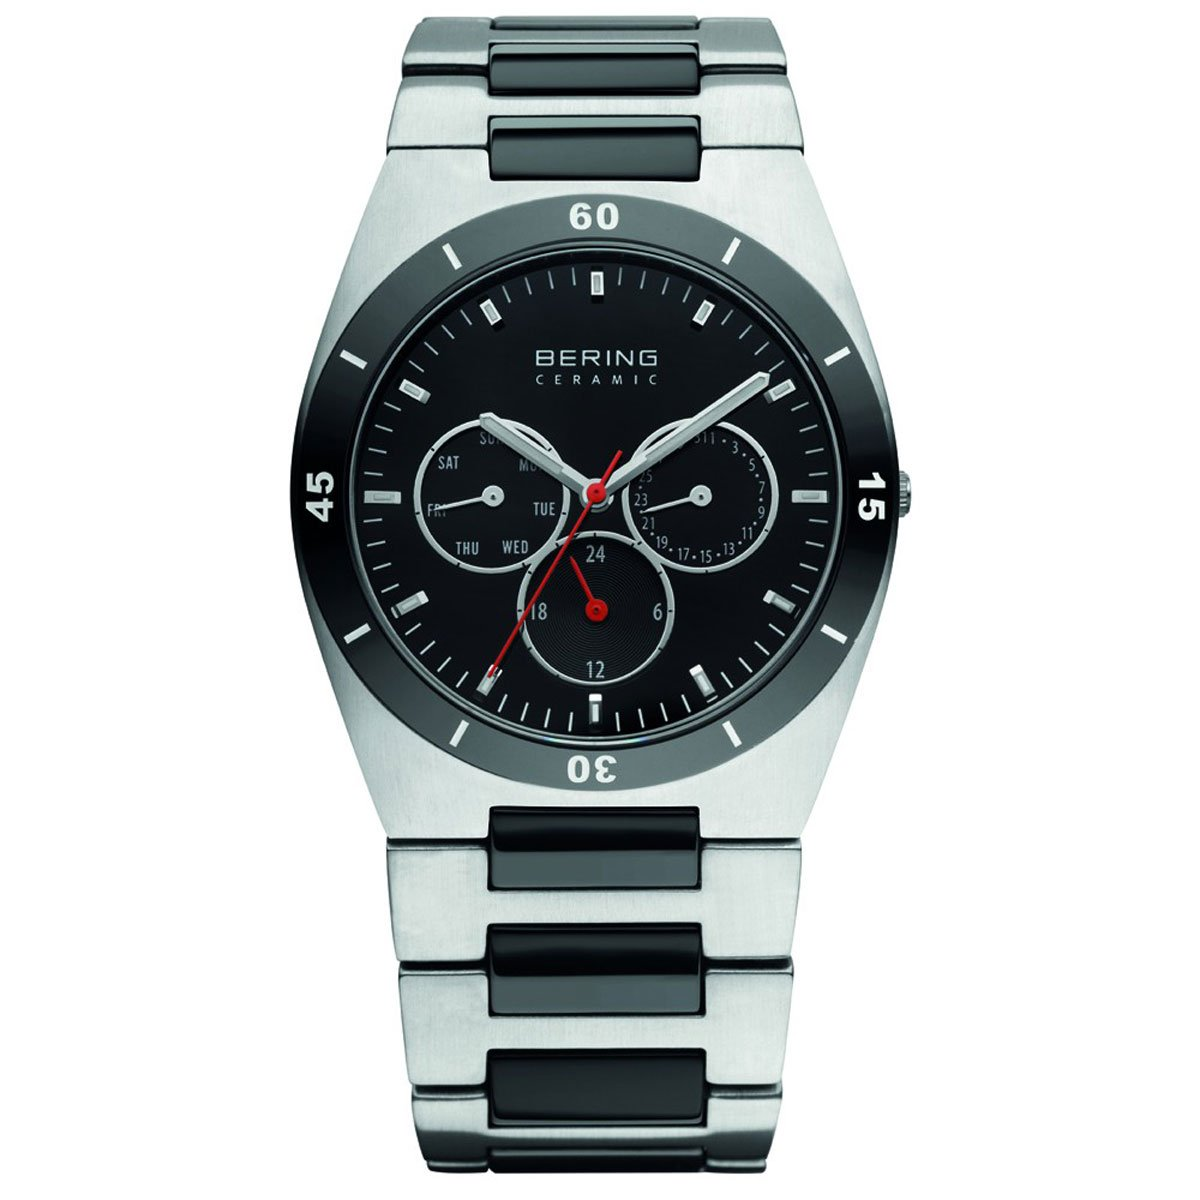 BERING Time 32341-742 Mens Ceramic Collection Watch with Stainless steel Band and scratch resistant sapphire crystal. Designed in Denmark.